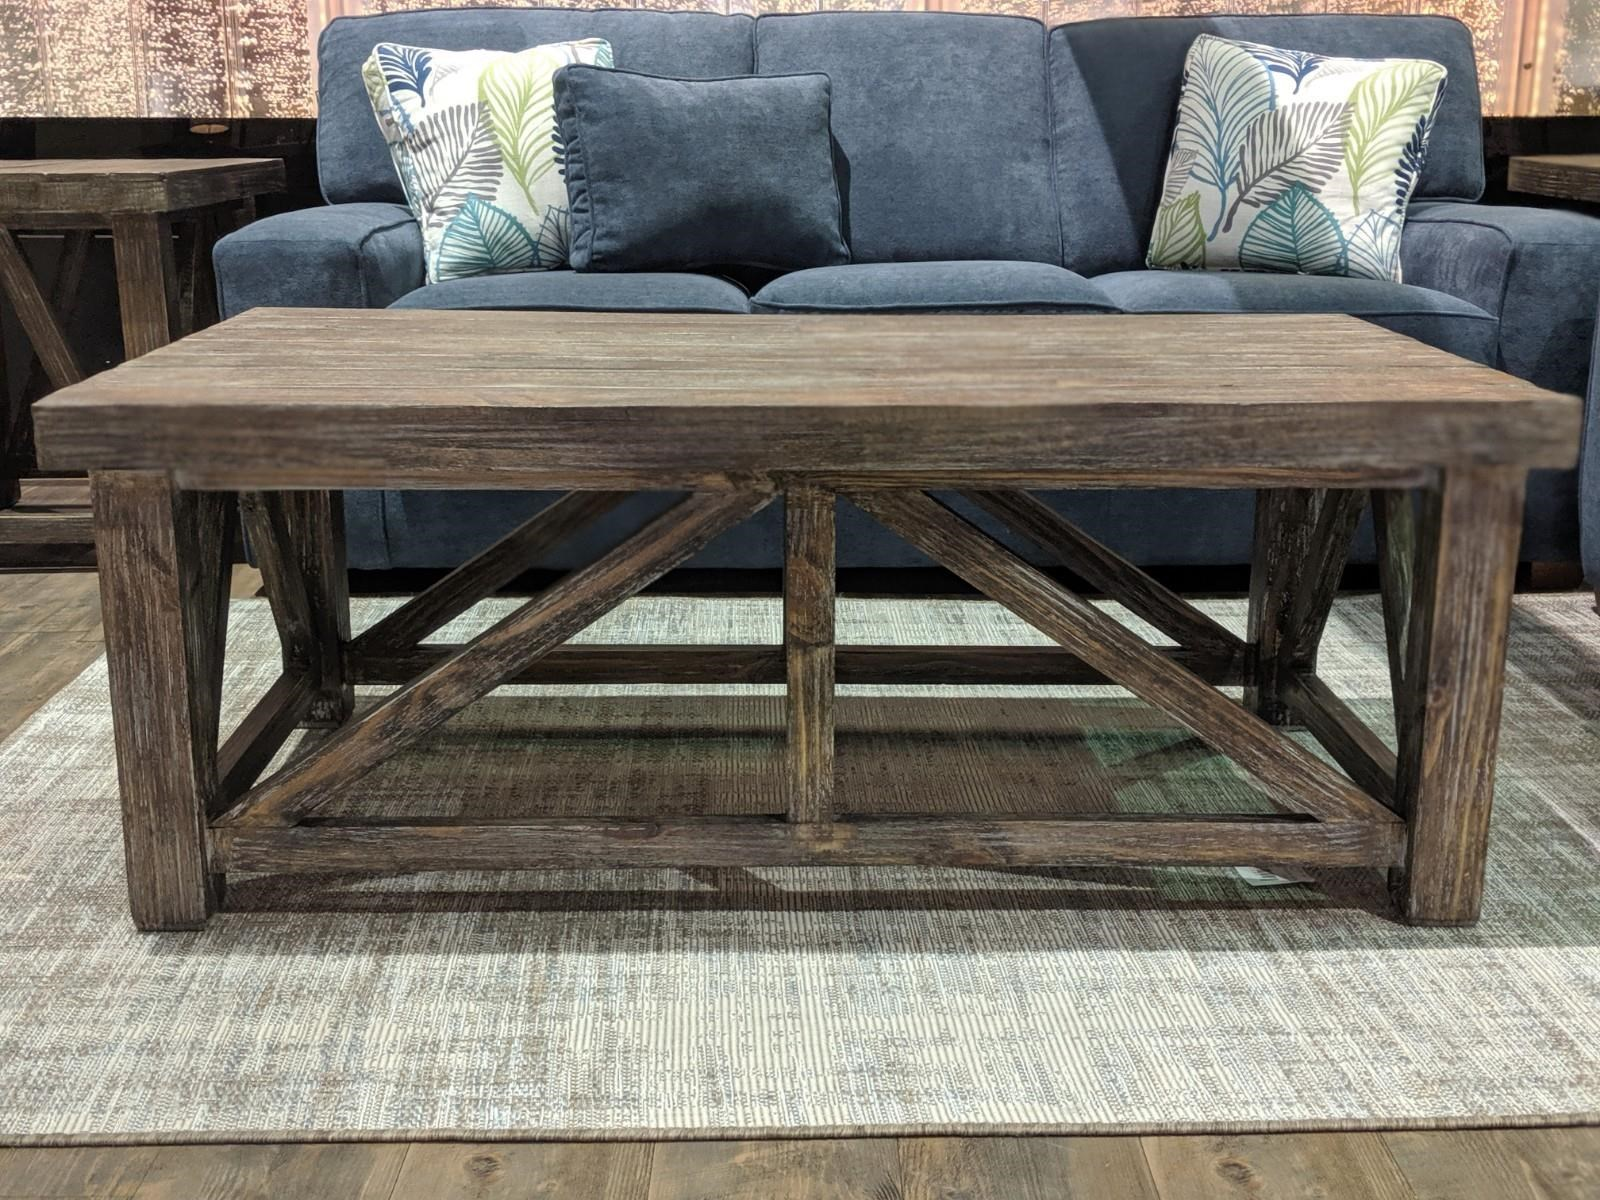 Spencer Collection Coffee Table by Vintage at Wilcox Furniture